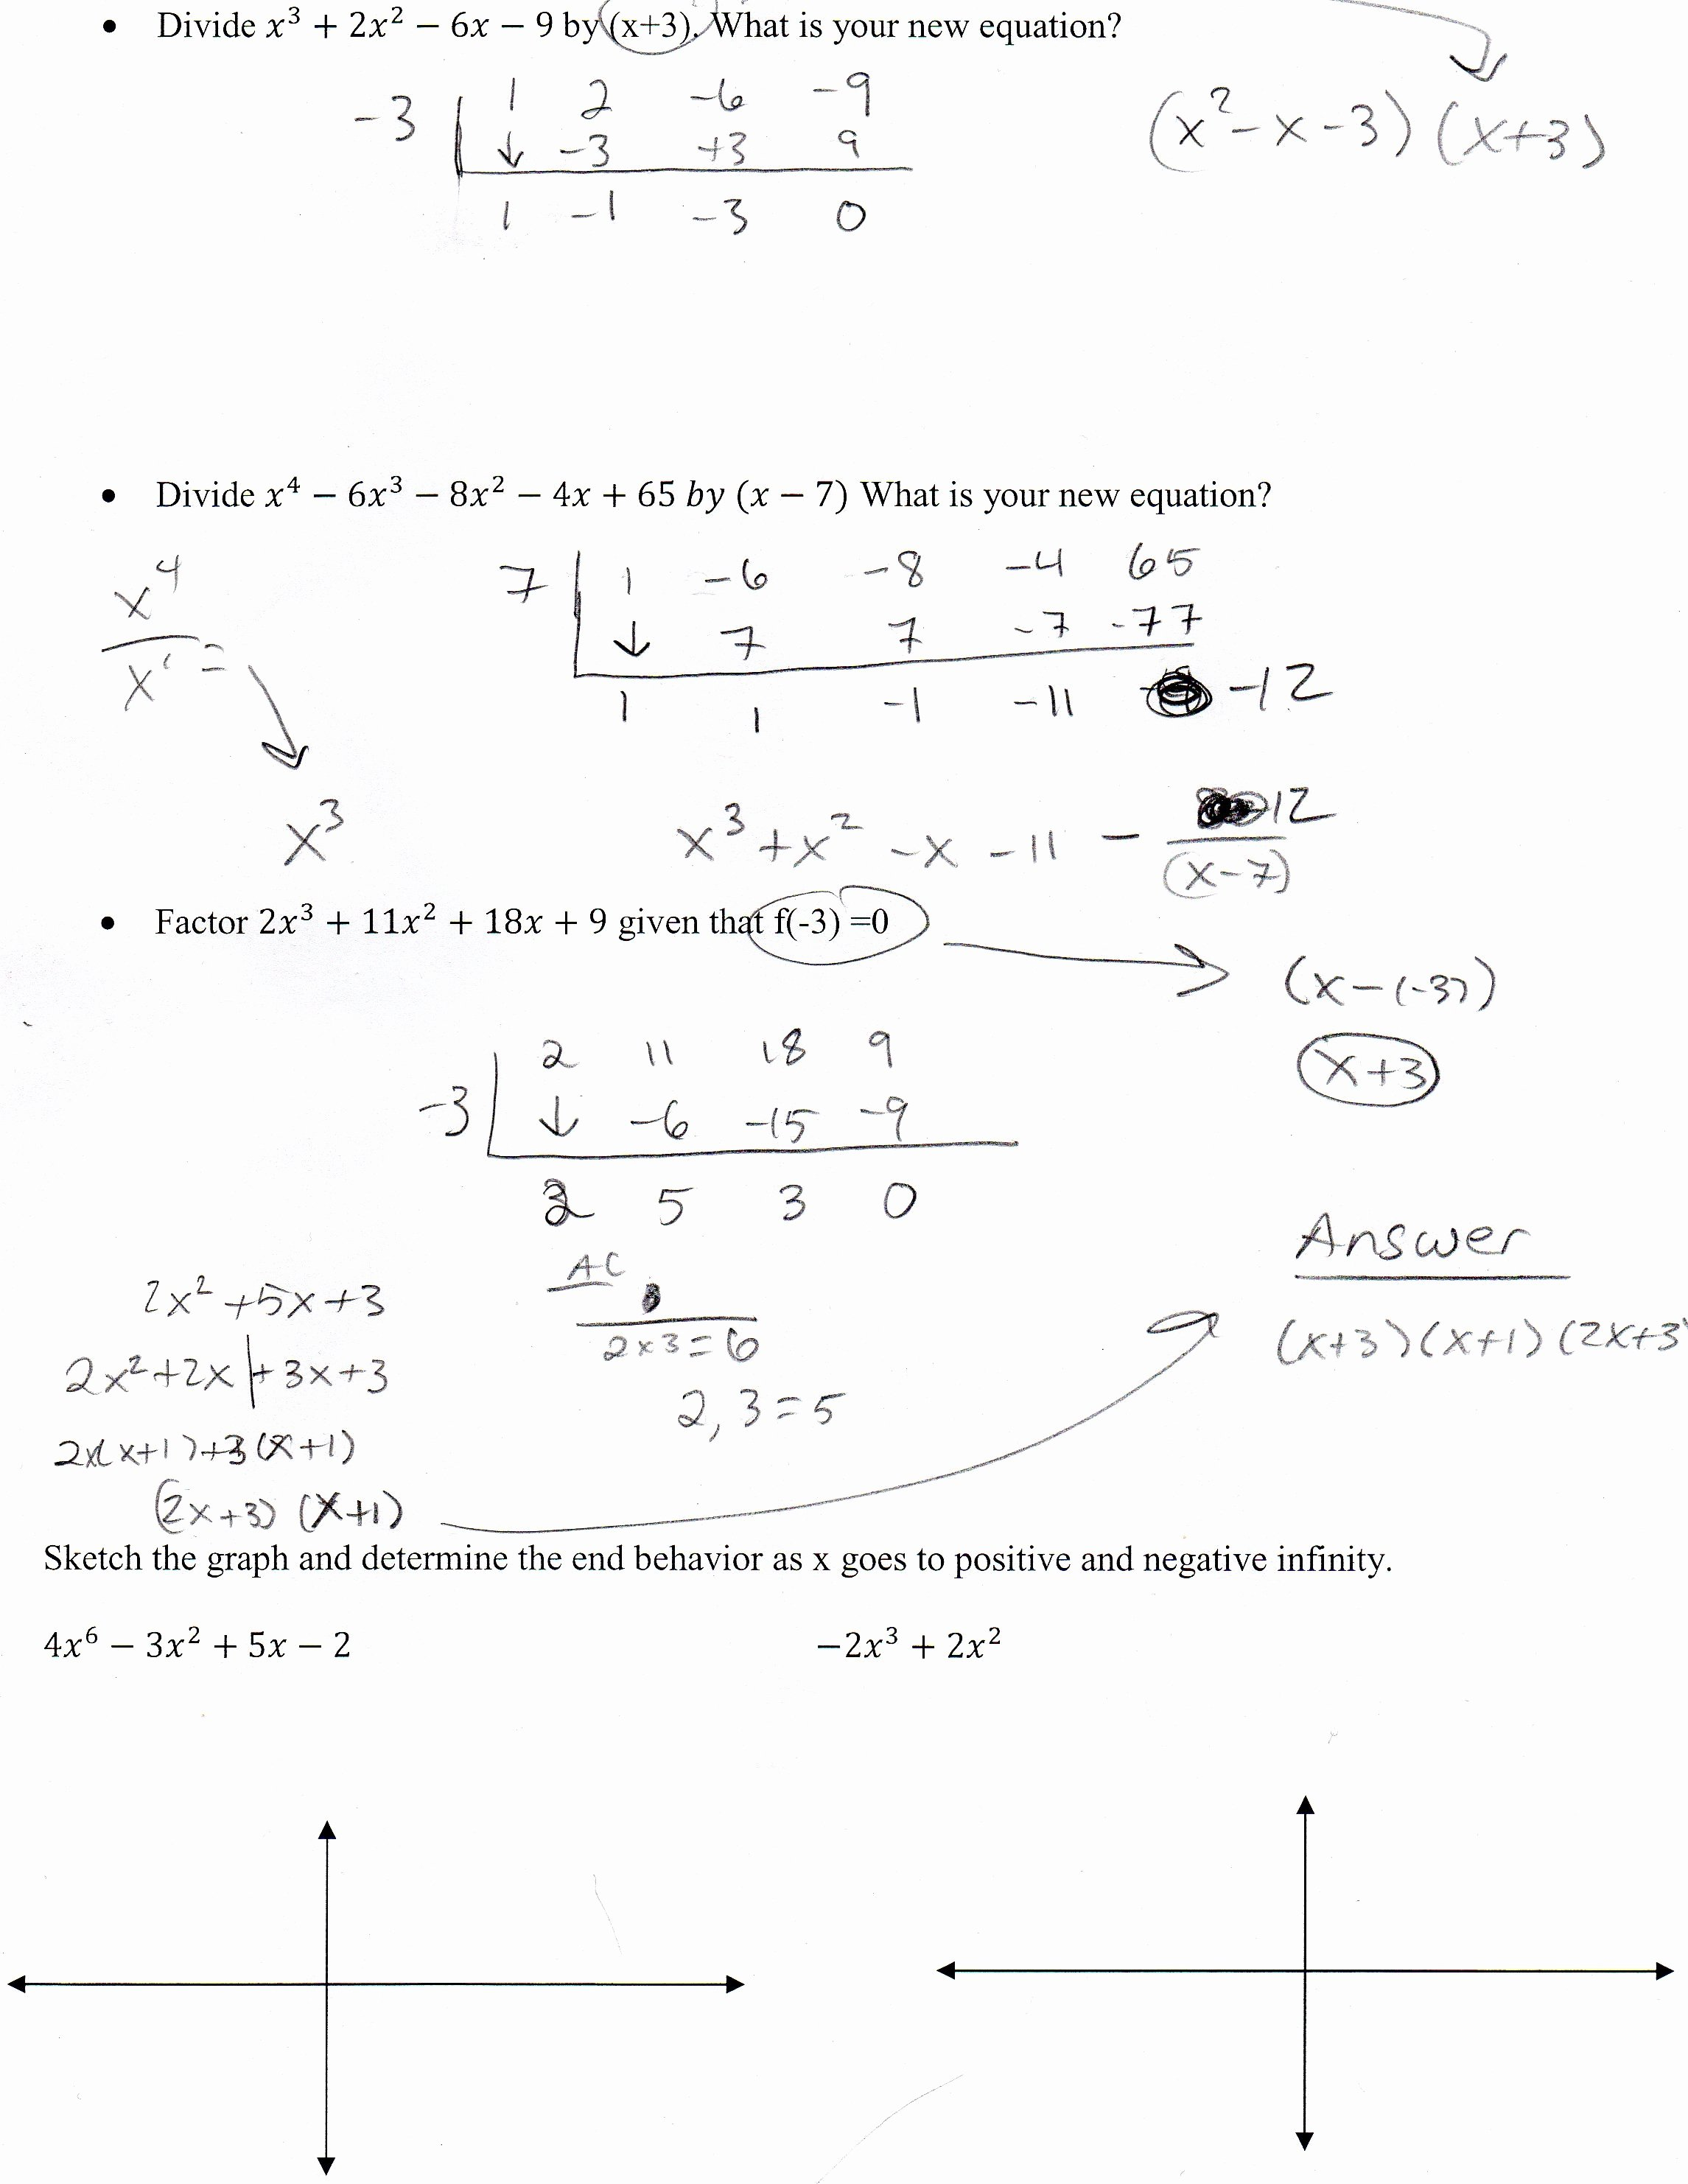 Algebra 2 Review Worksheet Luxury Worksheets Algebra 2 Review Worksheet Cheatslist Free